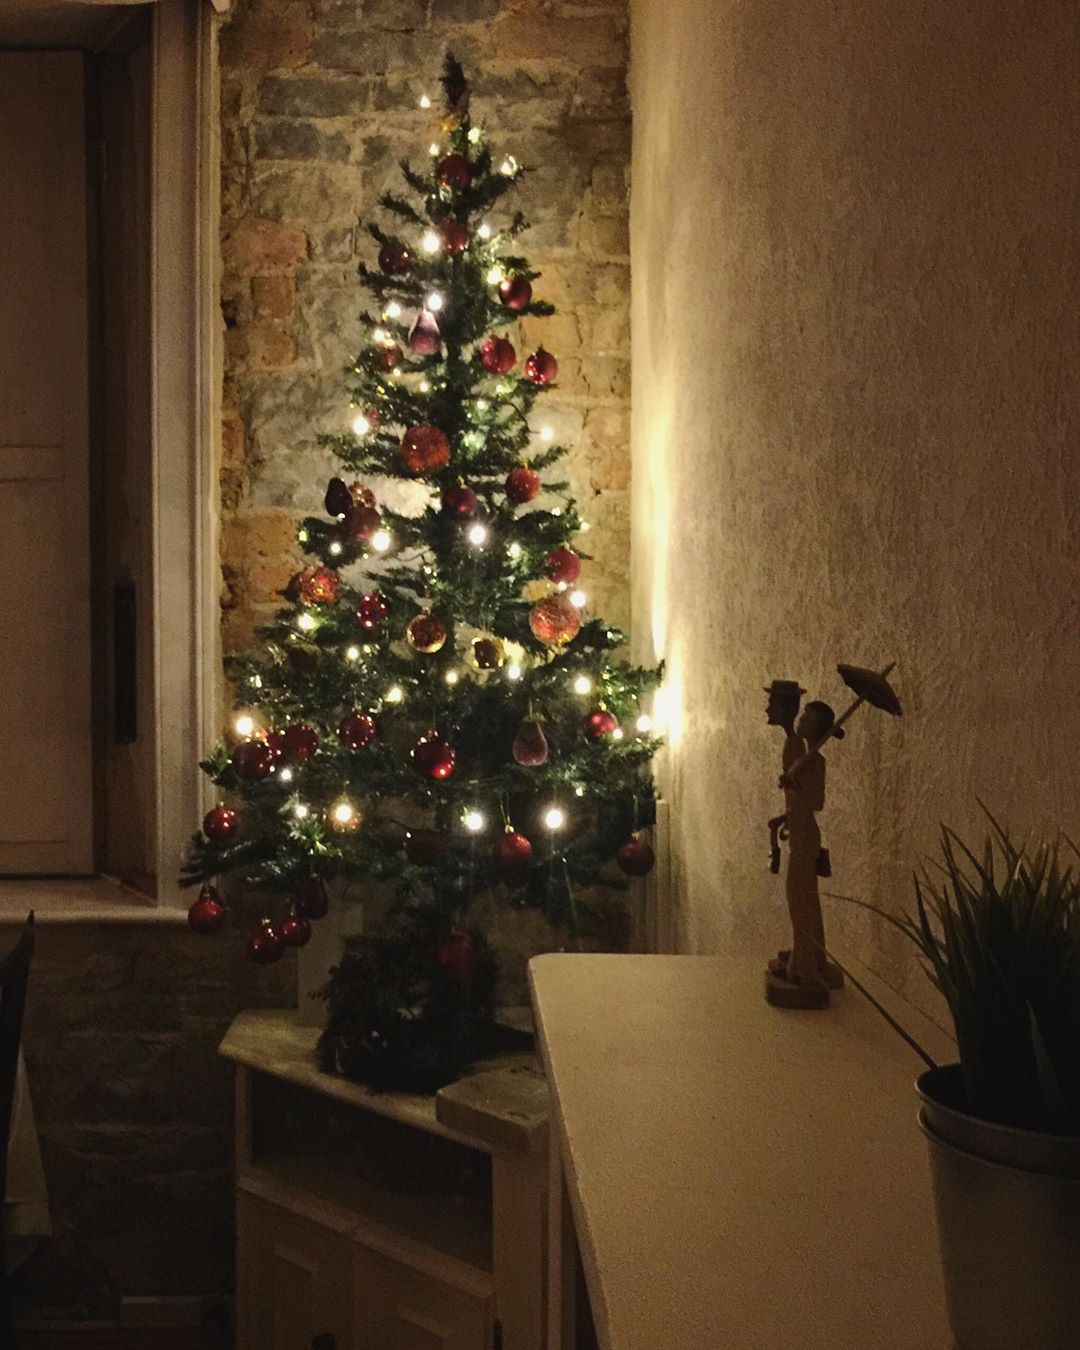 Christmas Tree for Christmas Home Decor (12)